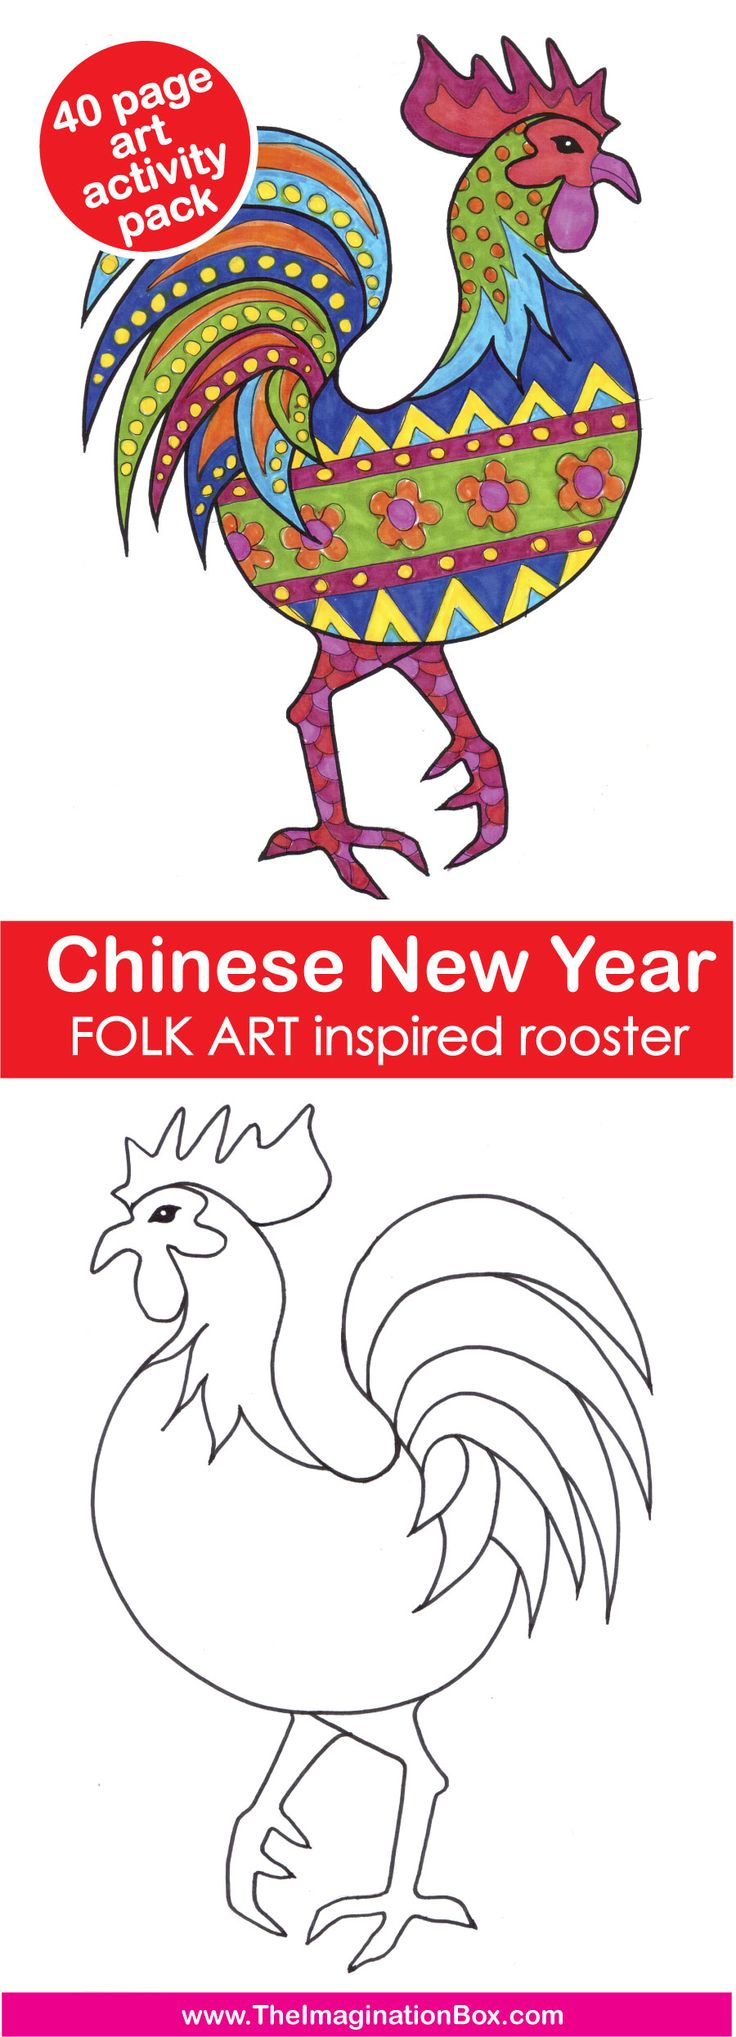 Childrens praying hands coloring page - Let S Welcome The Year Of The Rooster 2017 With Color Imagination And Fun This